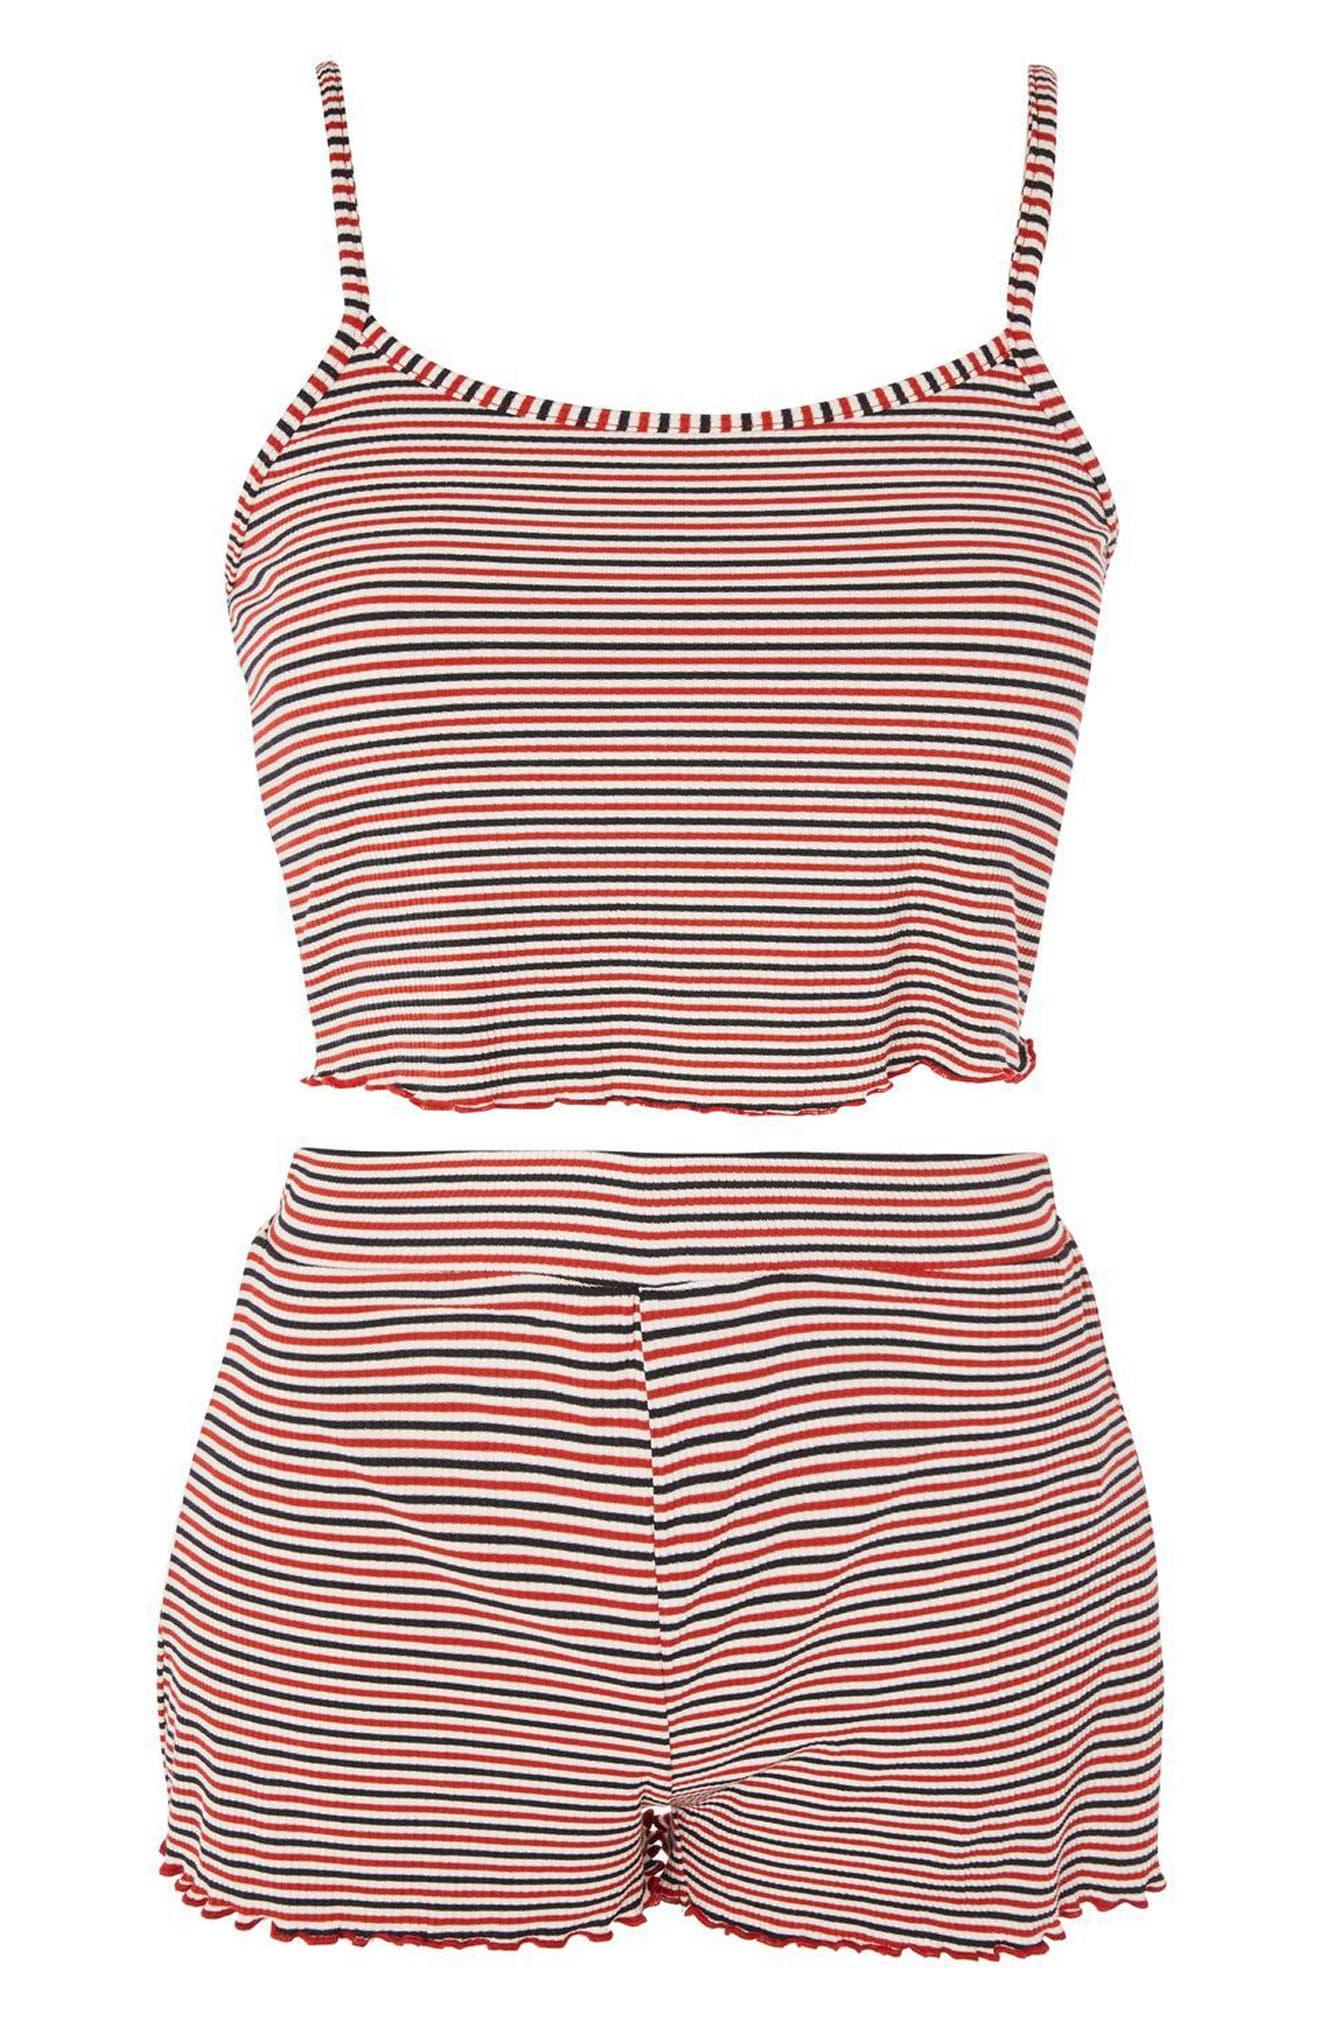 Alternate Image 3  - Topshop Striped Pajamas